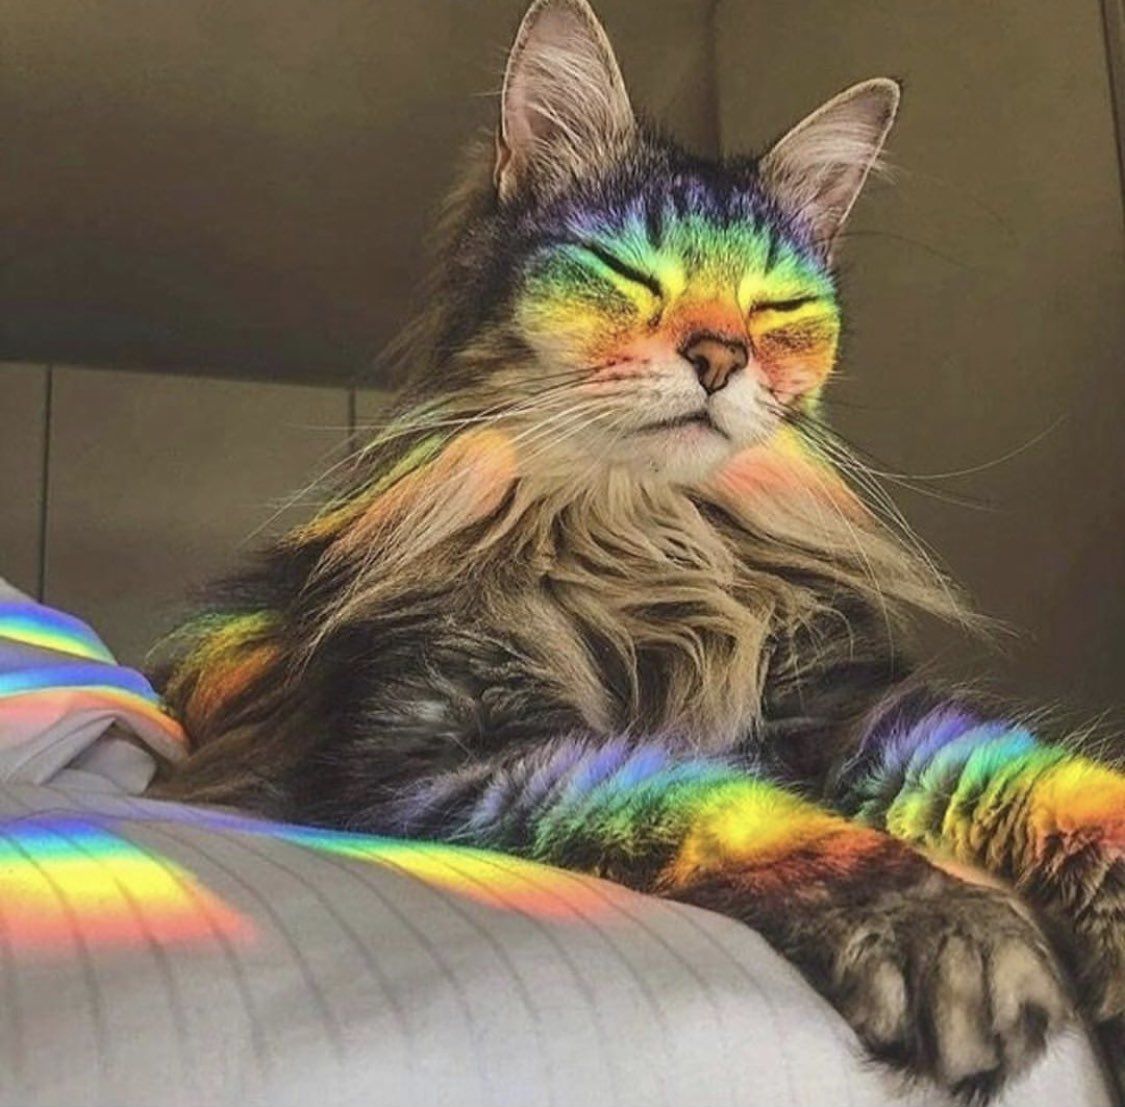 Friday (feline) Feels  May your weekend be full of sunshine and rainbows! #rainbowkitty #fridayvibes Drop your favorite feline emoji in the comments if this is what you feel like on Fridays!   @wang_ziyuu  via @refinery29<br>http://pic.twitter.com/bXnVUlsi1b